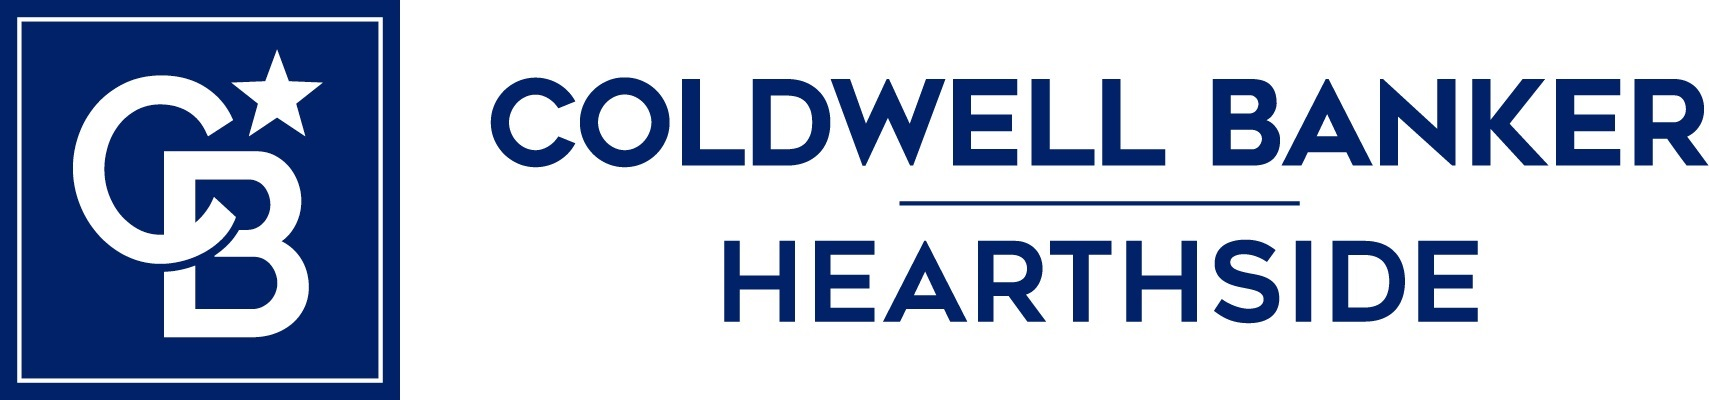 Ronald Foxworth - Coldwell Banker Hearthside